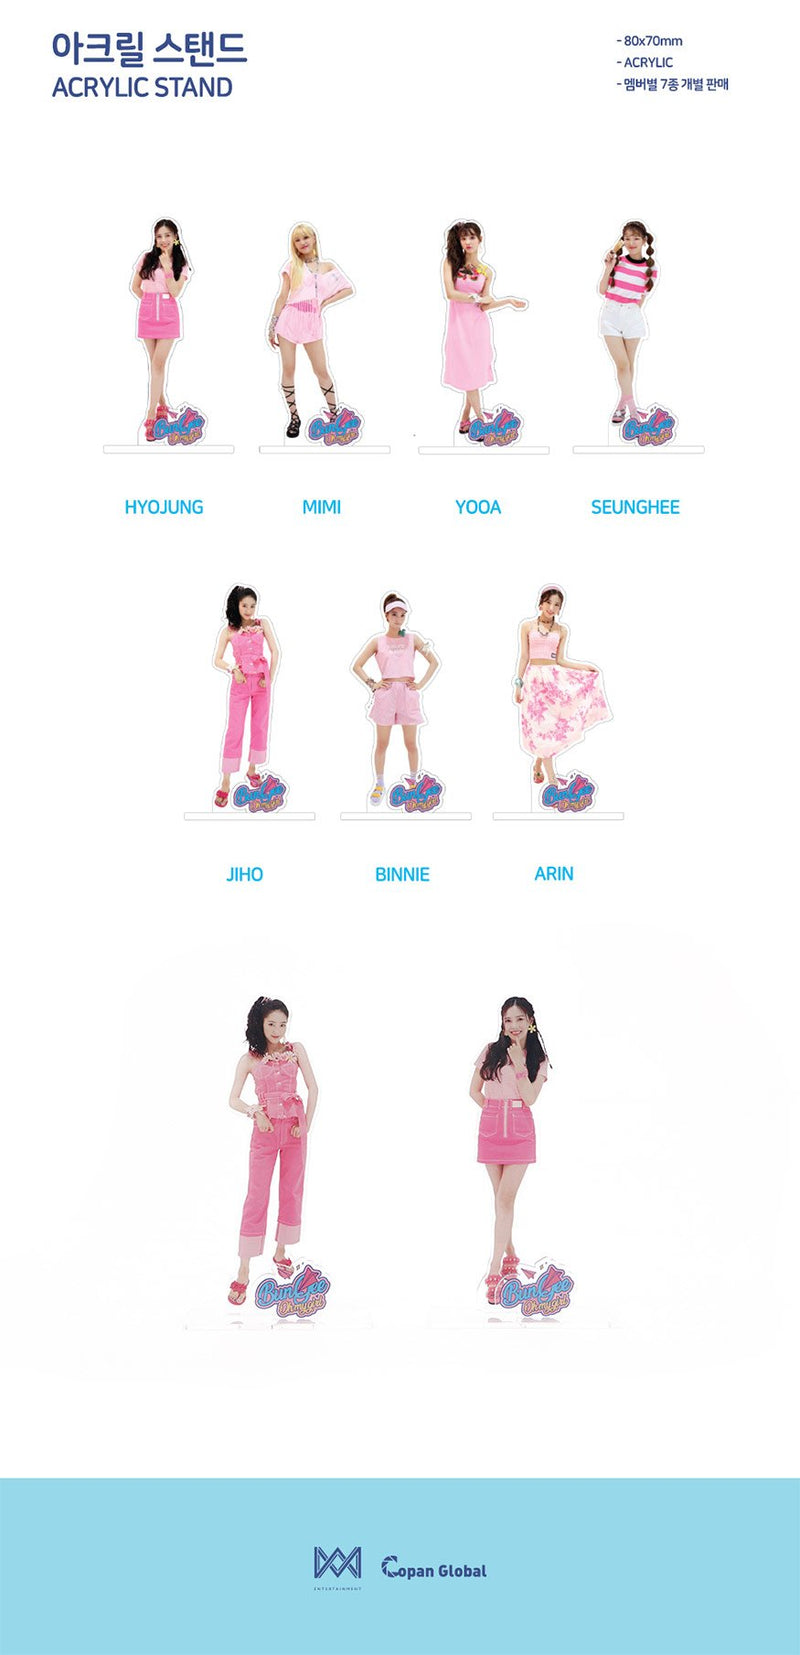 Oh My Girl Official Acrylic Stand